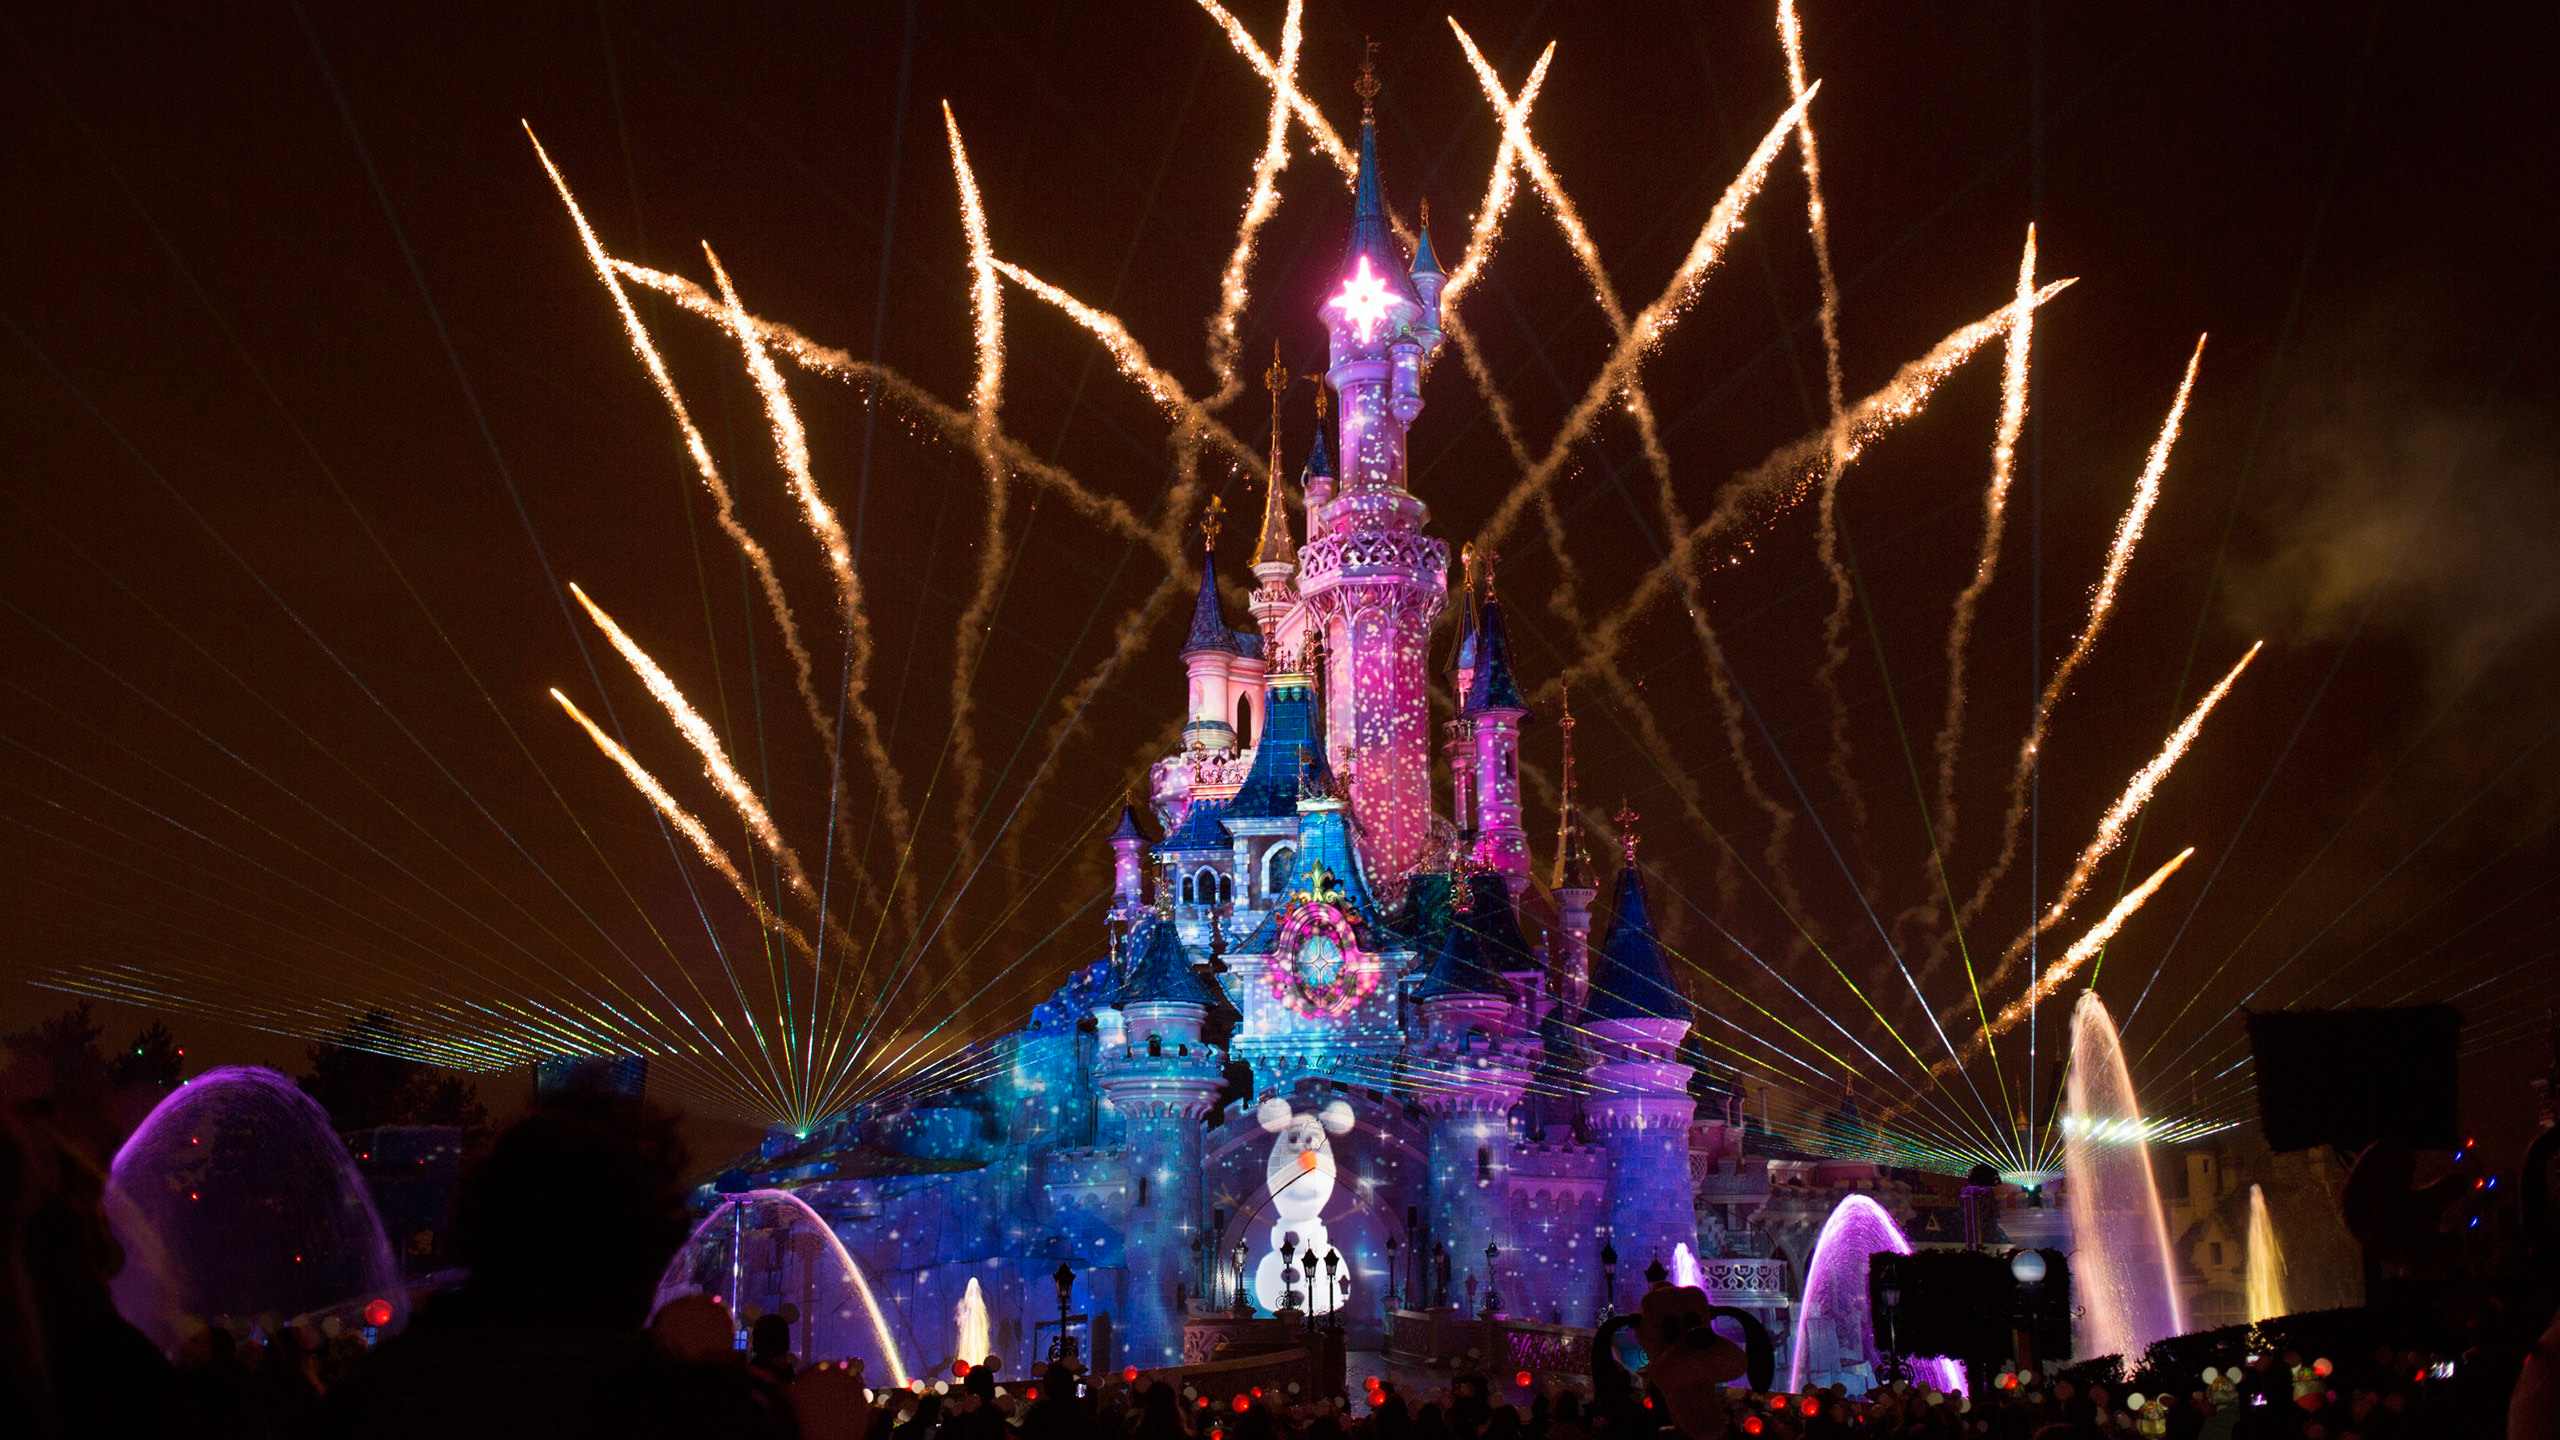 Hello disneyland le blog n 1 sur disneyland paris le r veillon de no l et - Reveillon nouvel an paris ...